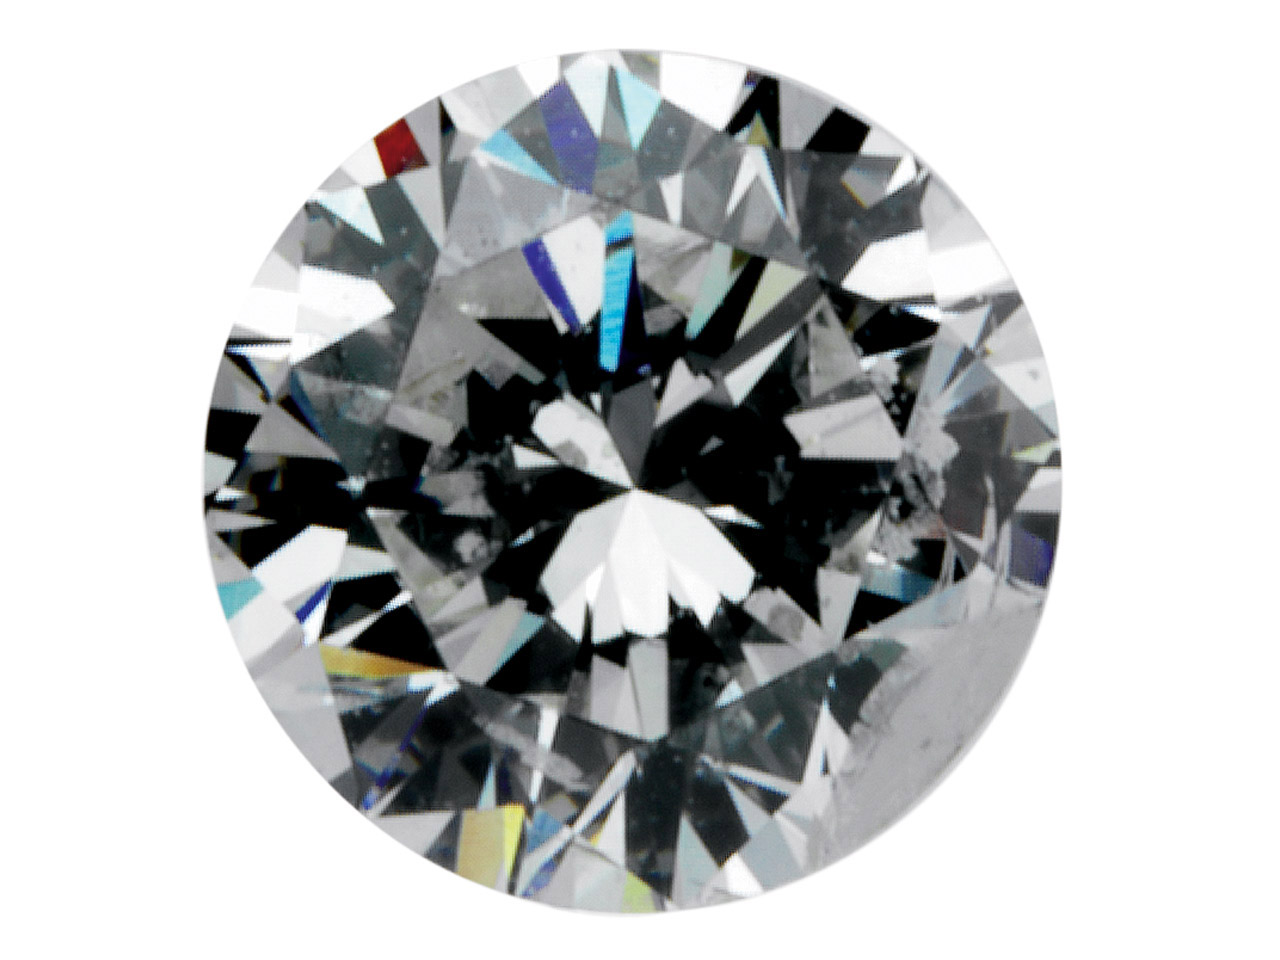 Diamond, Round, H-i/p2, 8pt/2.75mm